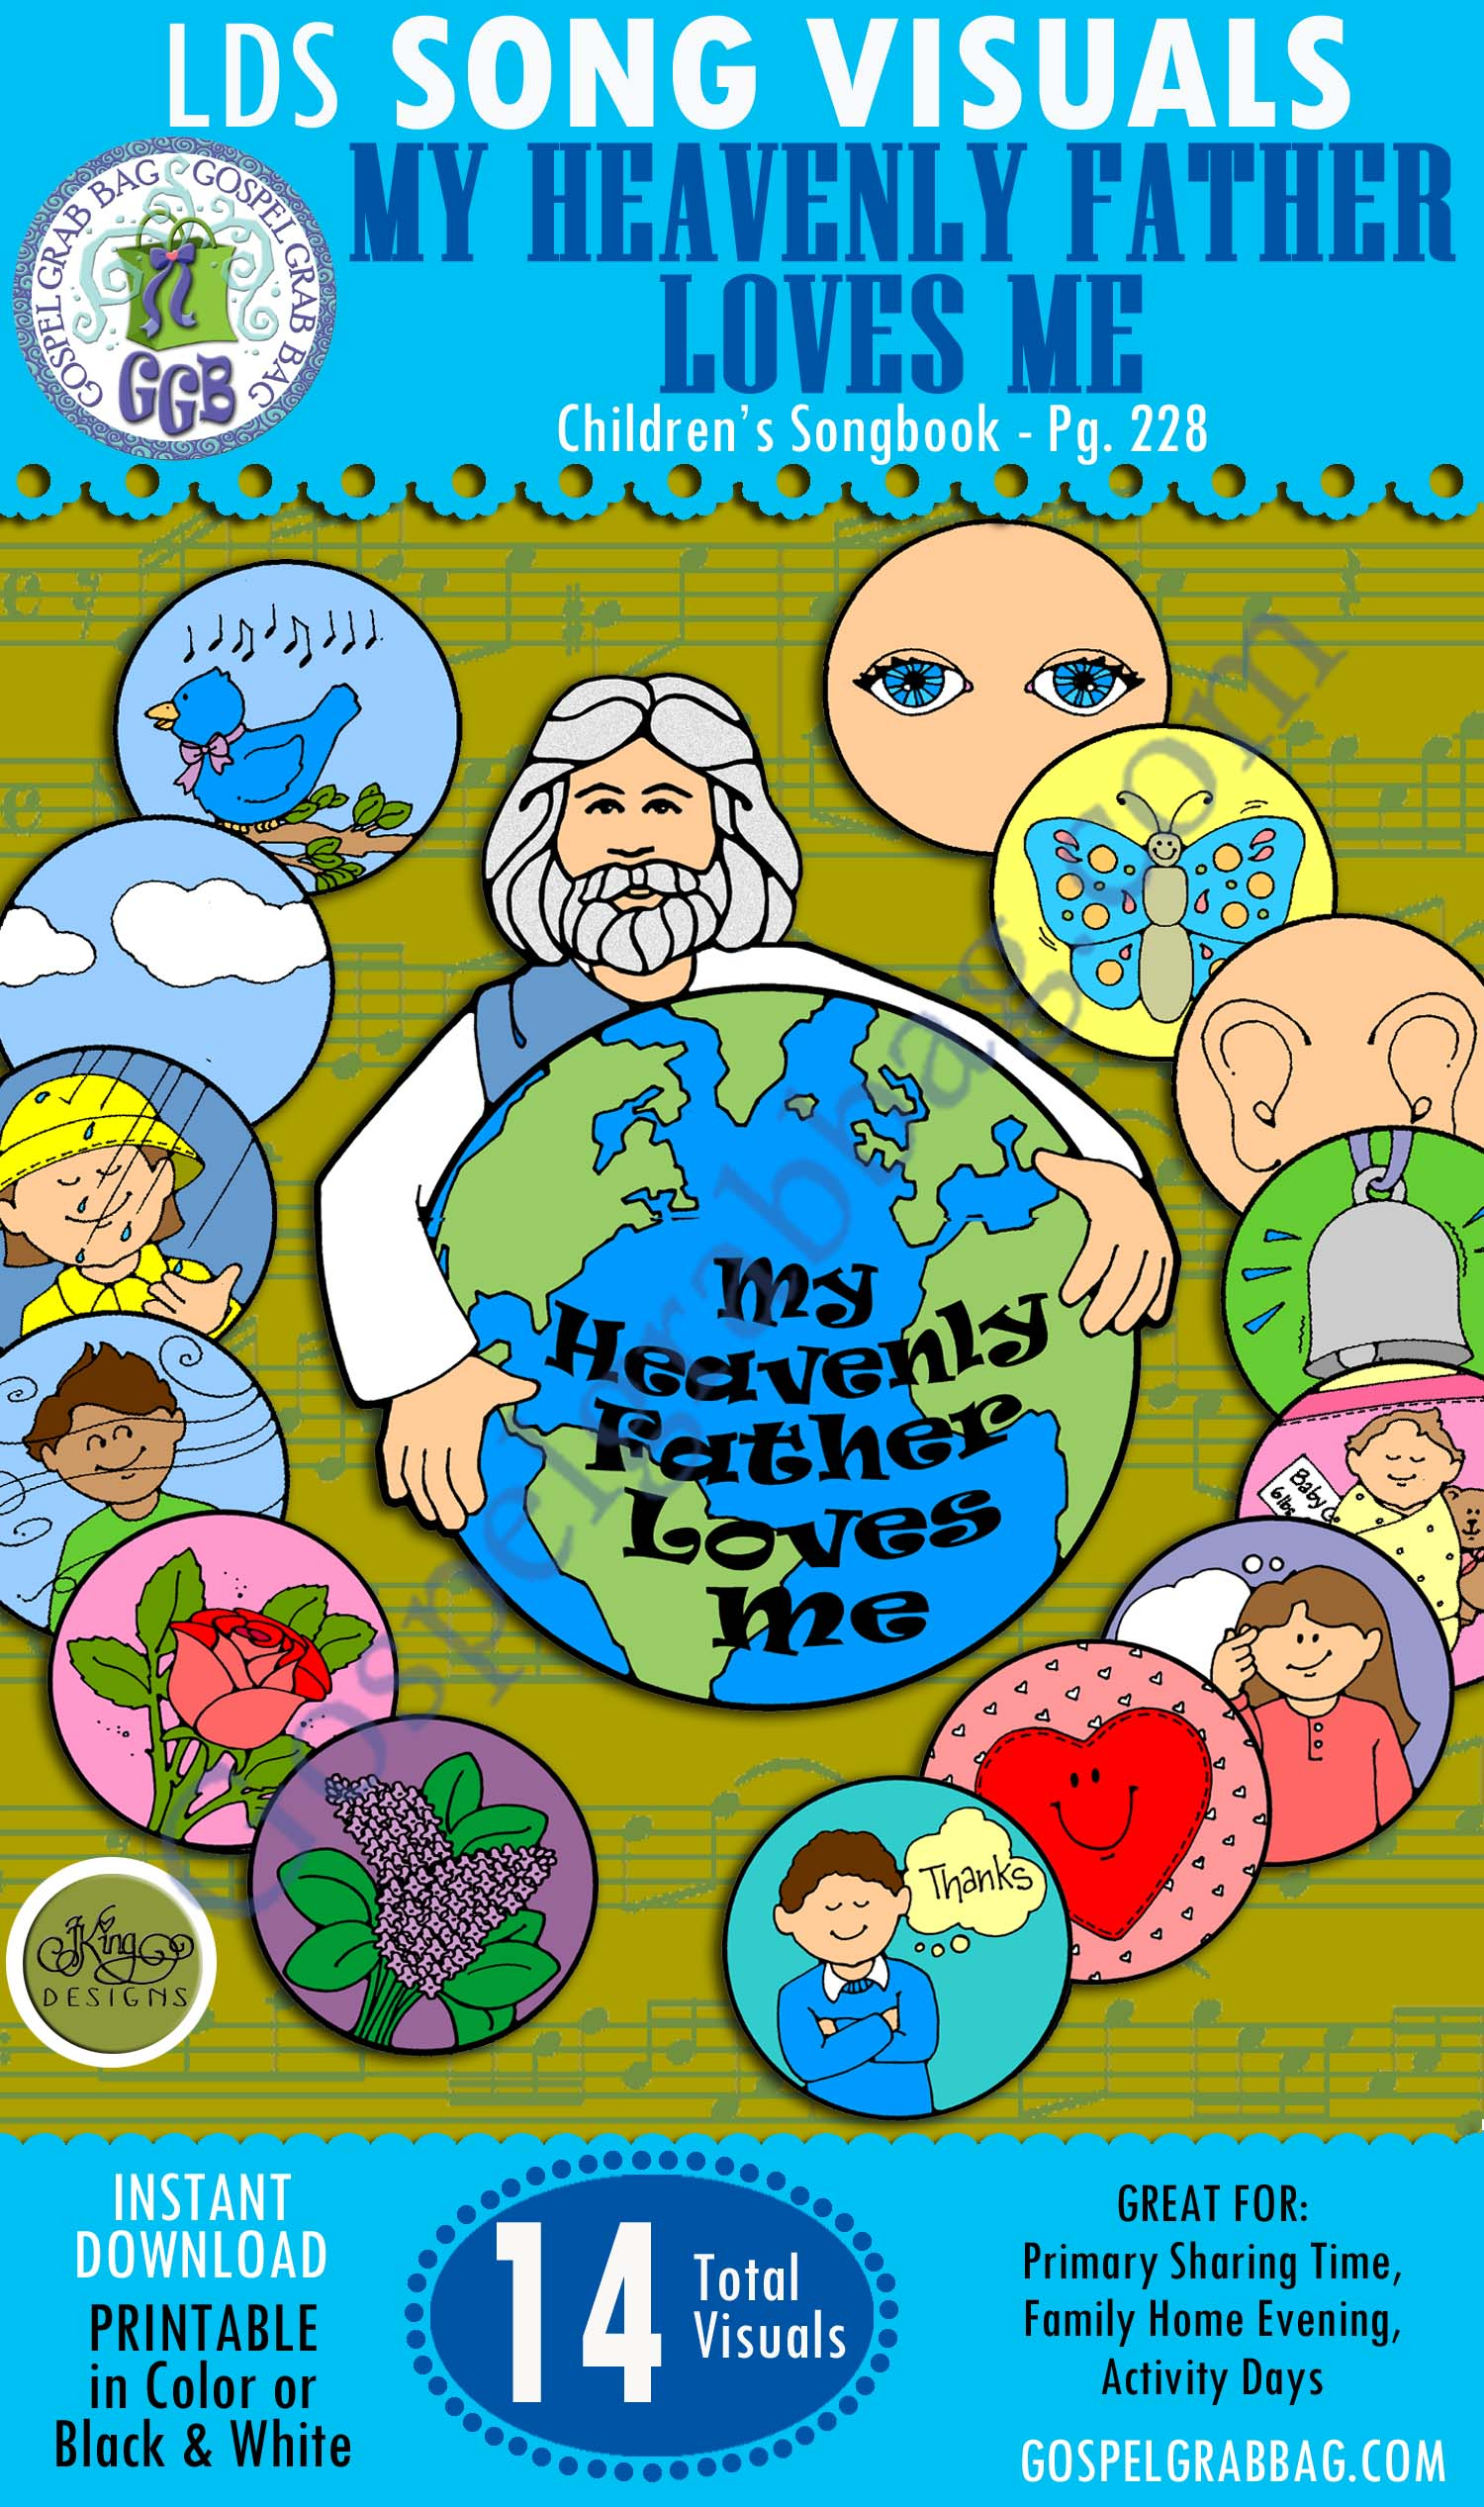 MY HEAVENLY FATHER LOVES ME: Primary Song Visuals to print in color, ready-to-use – Illustrated by Jennette Guymon-King, Author, Mary H. Ross, music leaders use visuals to teach children songs for the Sacrament Meeting Presentation – practice songs - Singing Time Visuals to DOWNLOAD from gospelgrabbag.com